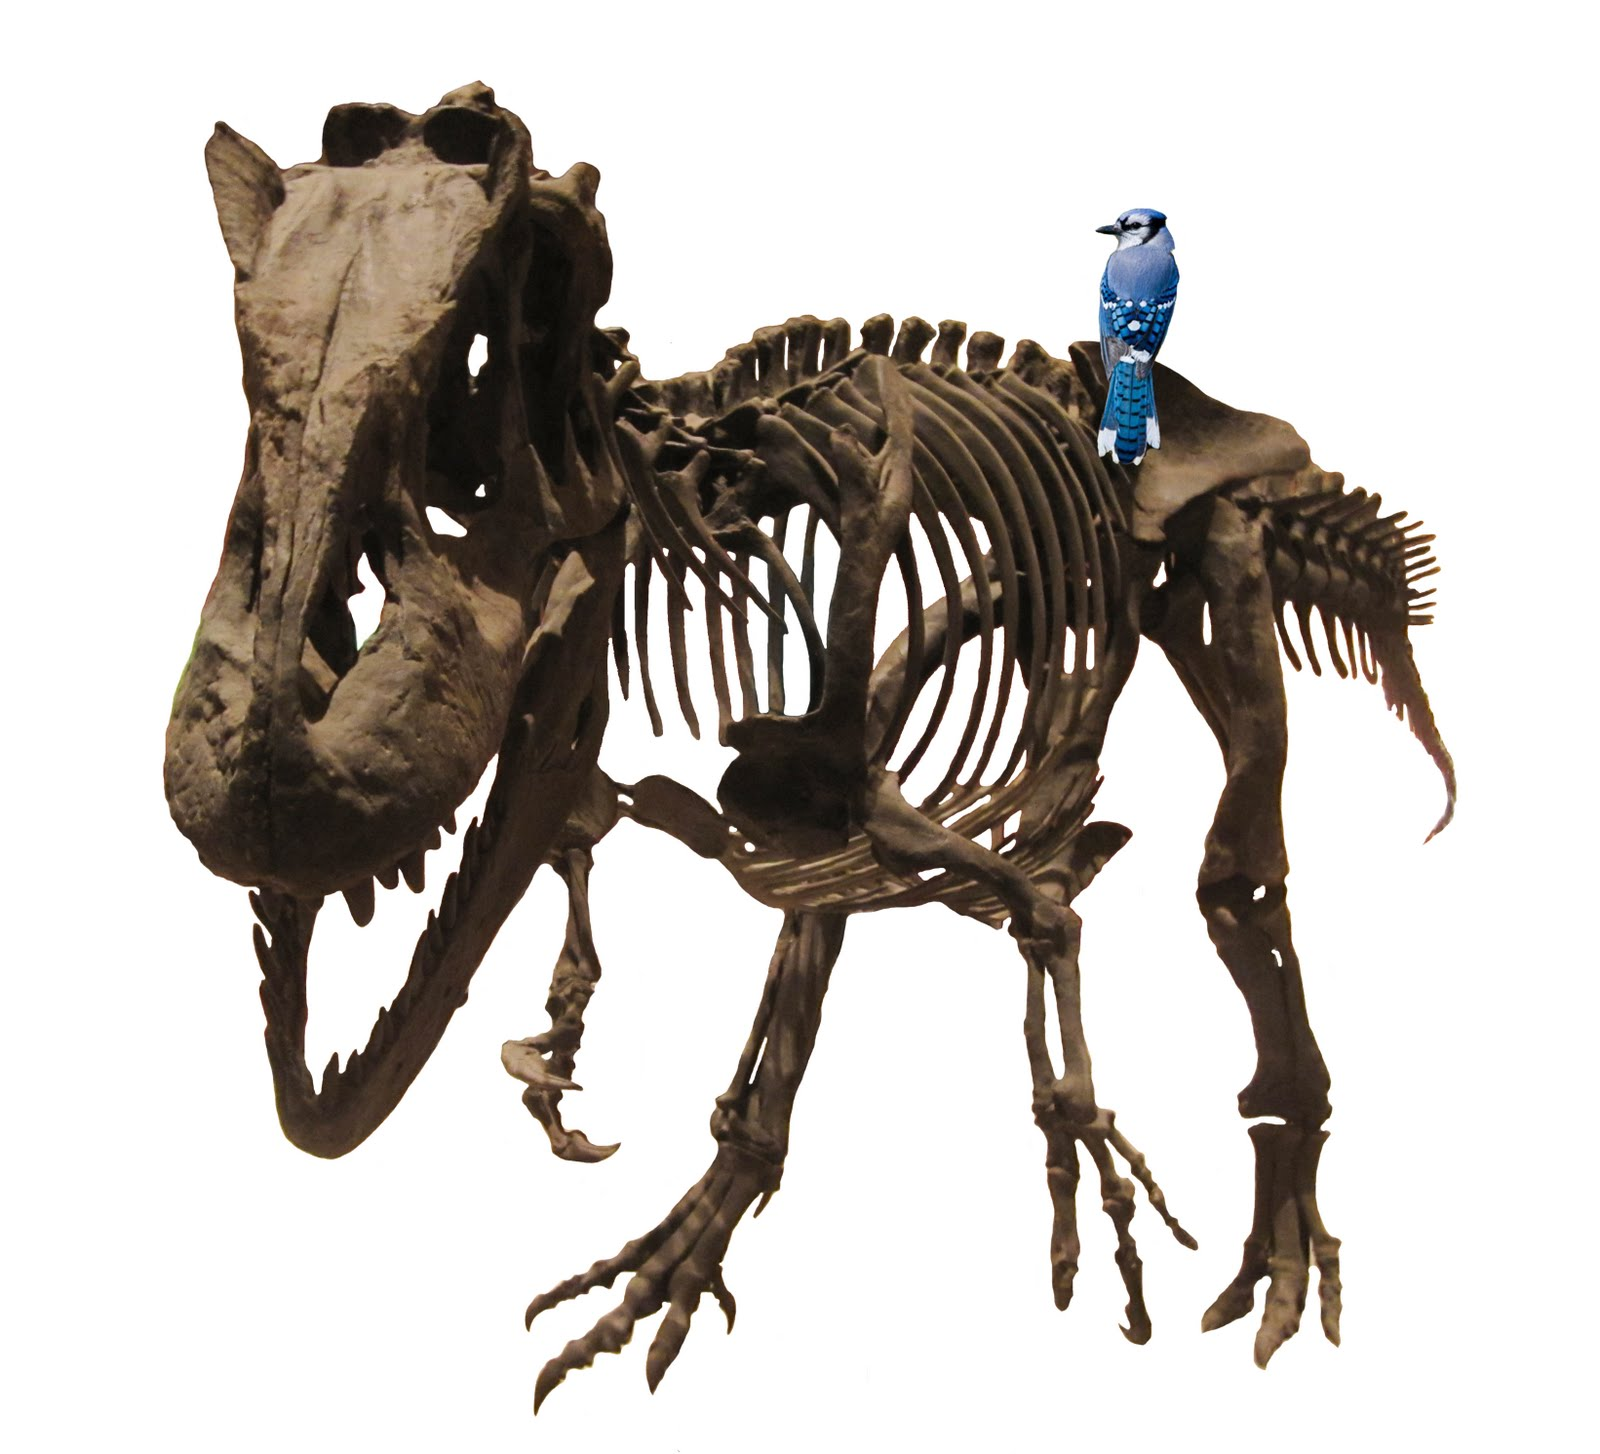 what is the evolutionary relationship between birds and dinosaurs